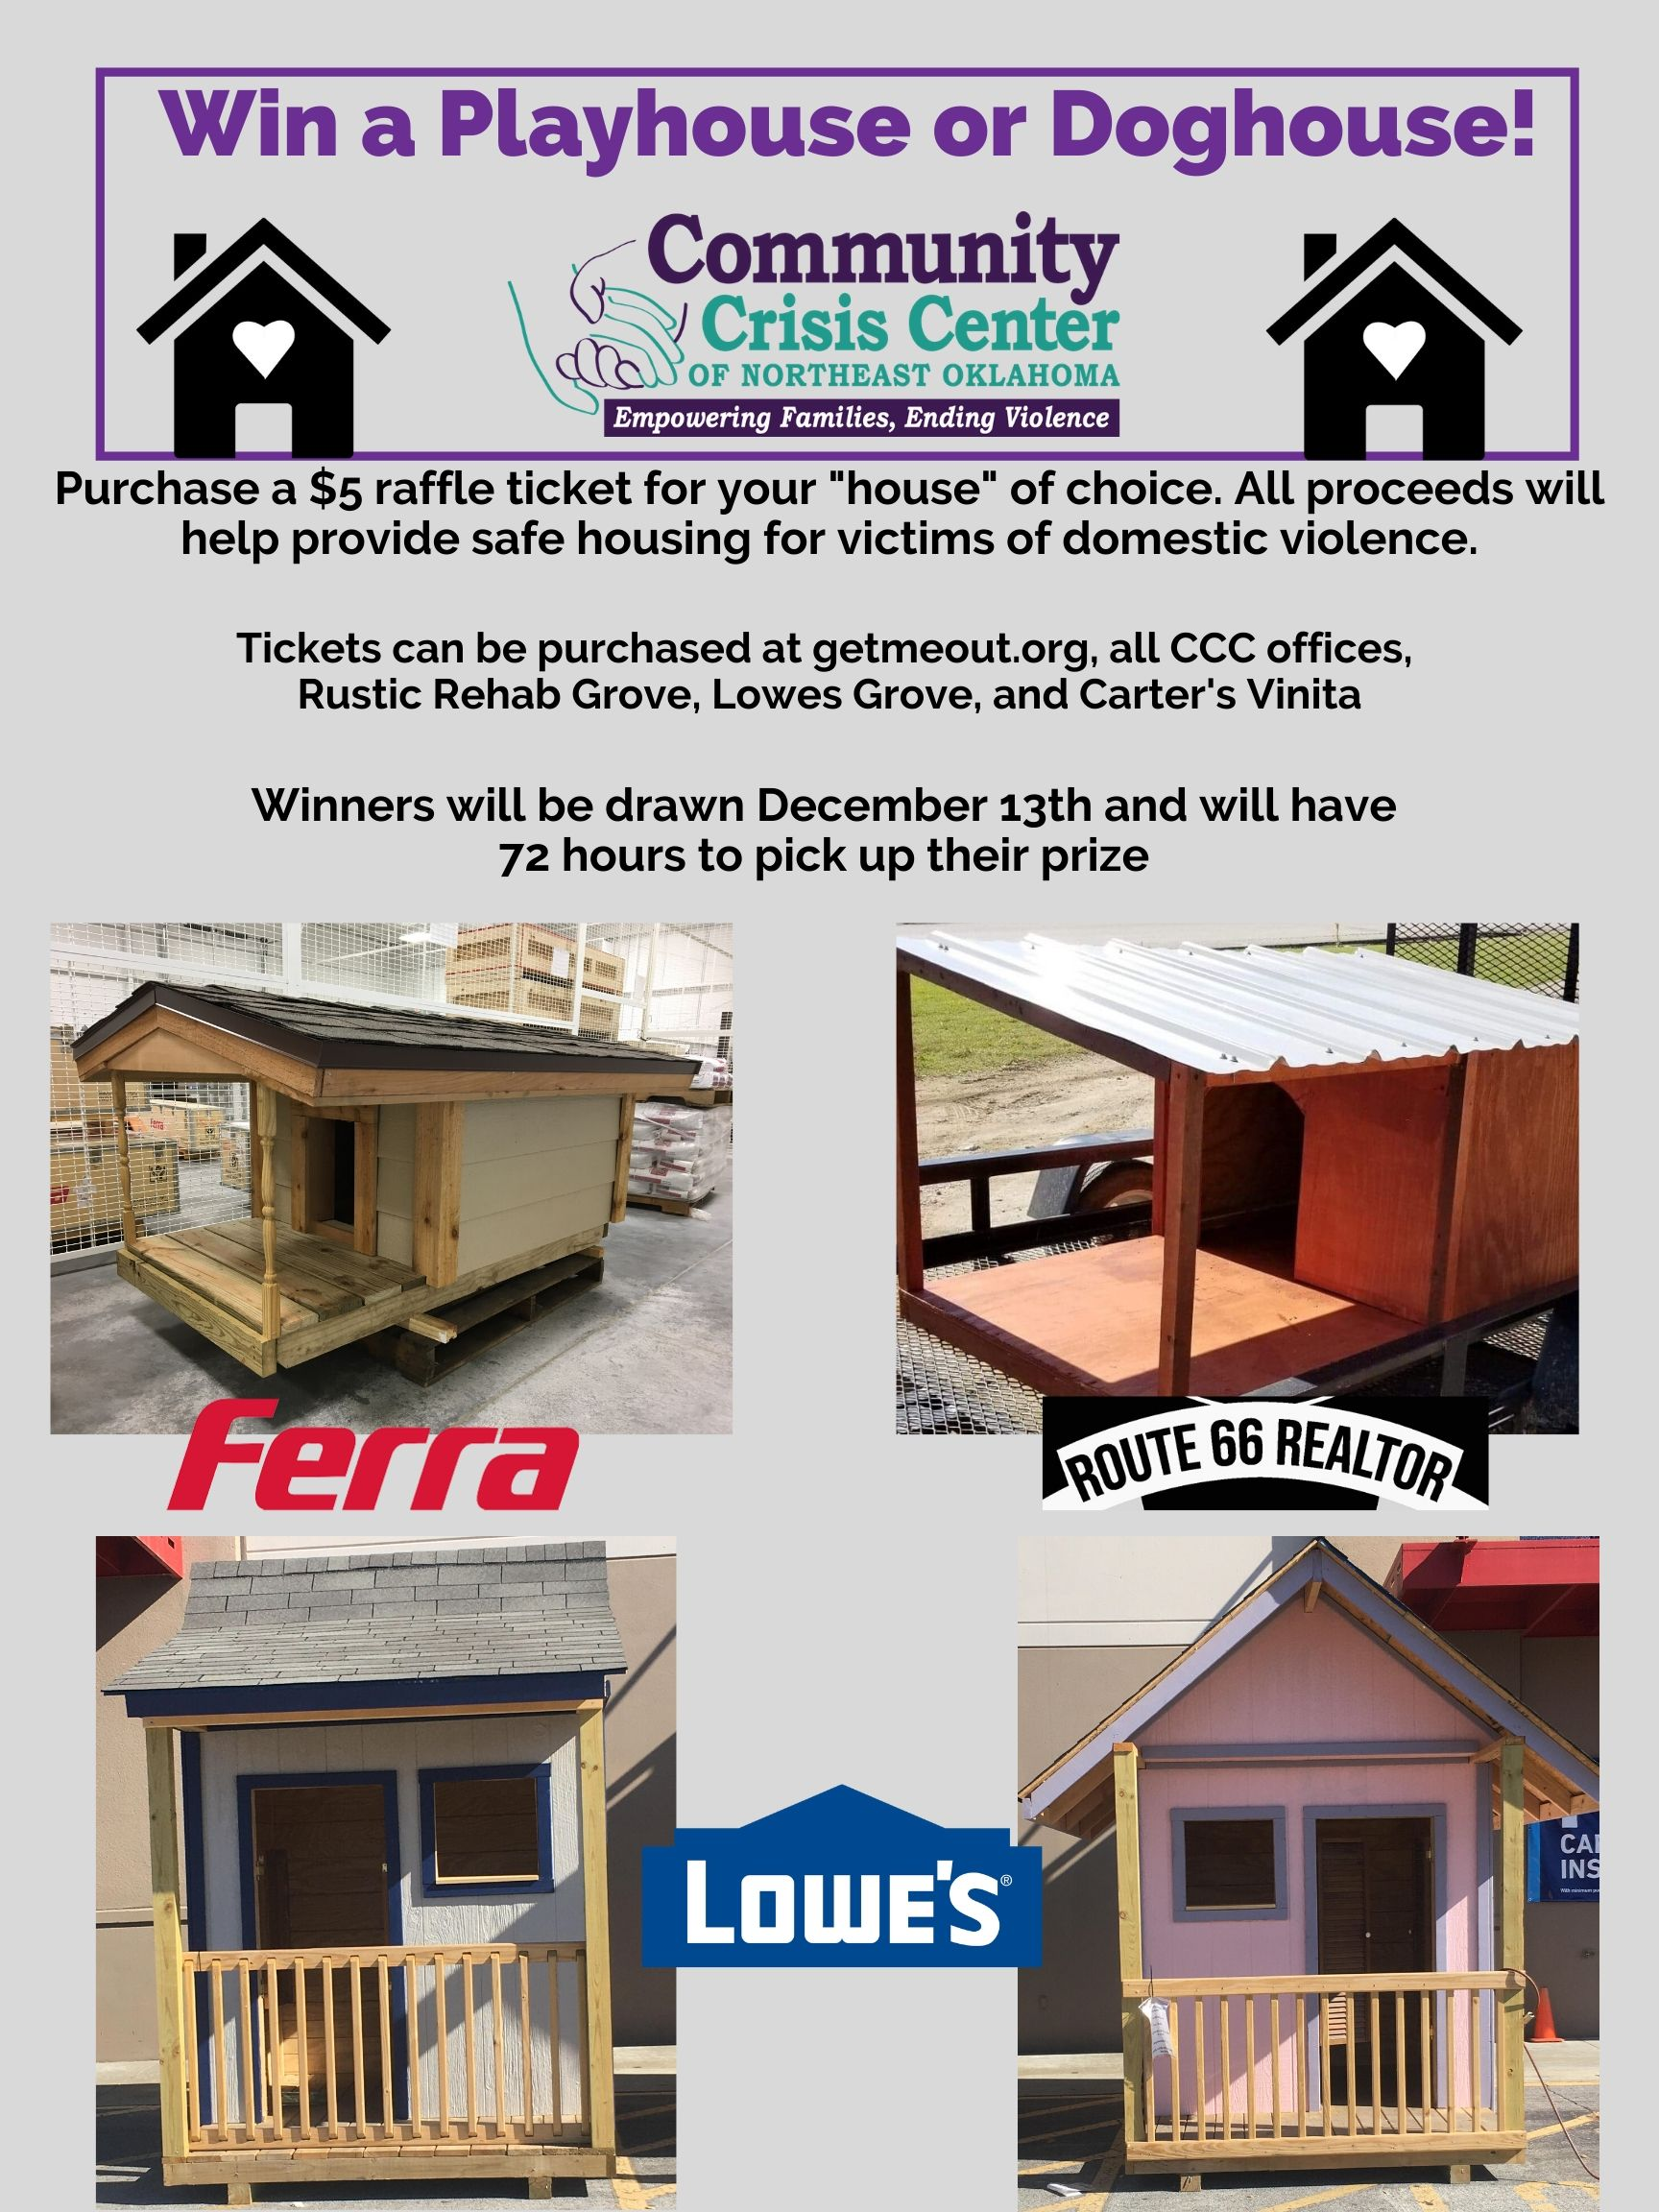 Win A Pet or Play House!